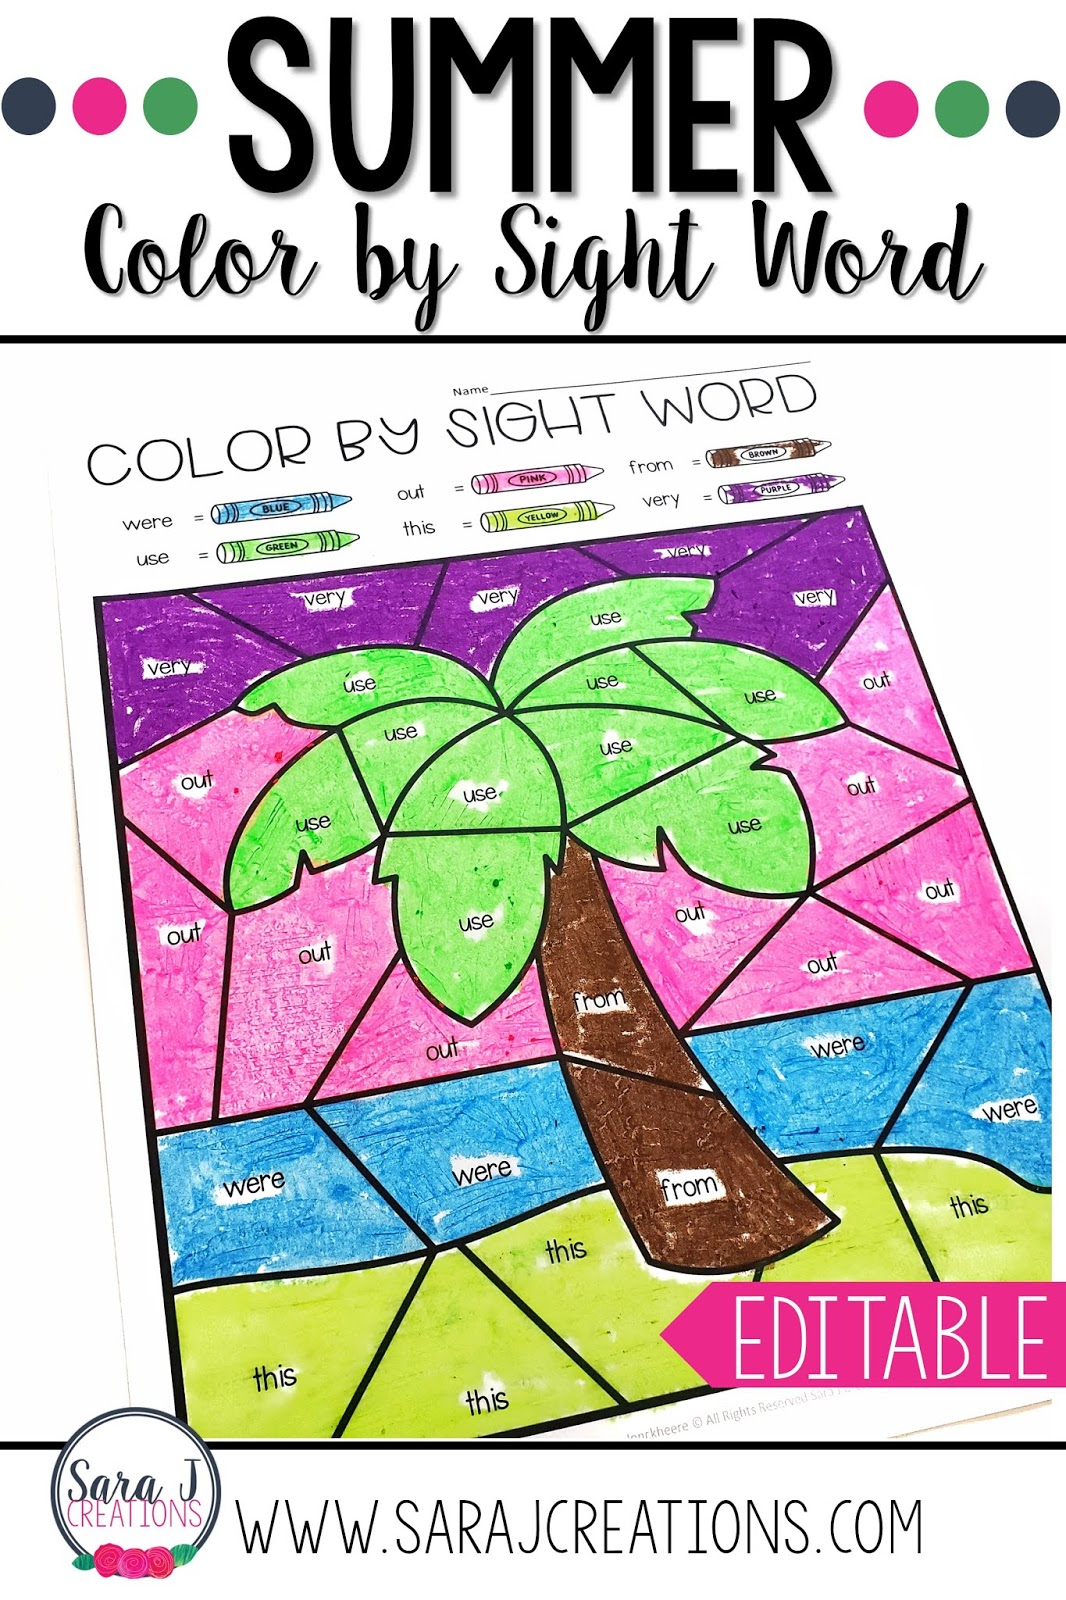 Editable Summer Color by Sight Word pages!!!! This is exactly what you need to make practicing sight words fun and meaningful for your students. You can easily differentiate for each student with a few quick clicks. No matter what sight words your students are working on, you can create personalized coloring worksheets in a snap! Includes summer and patriotic themed pictures.